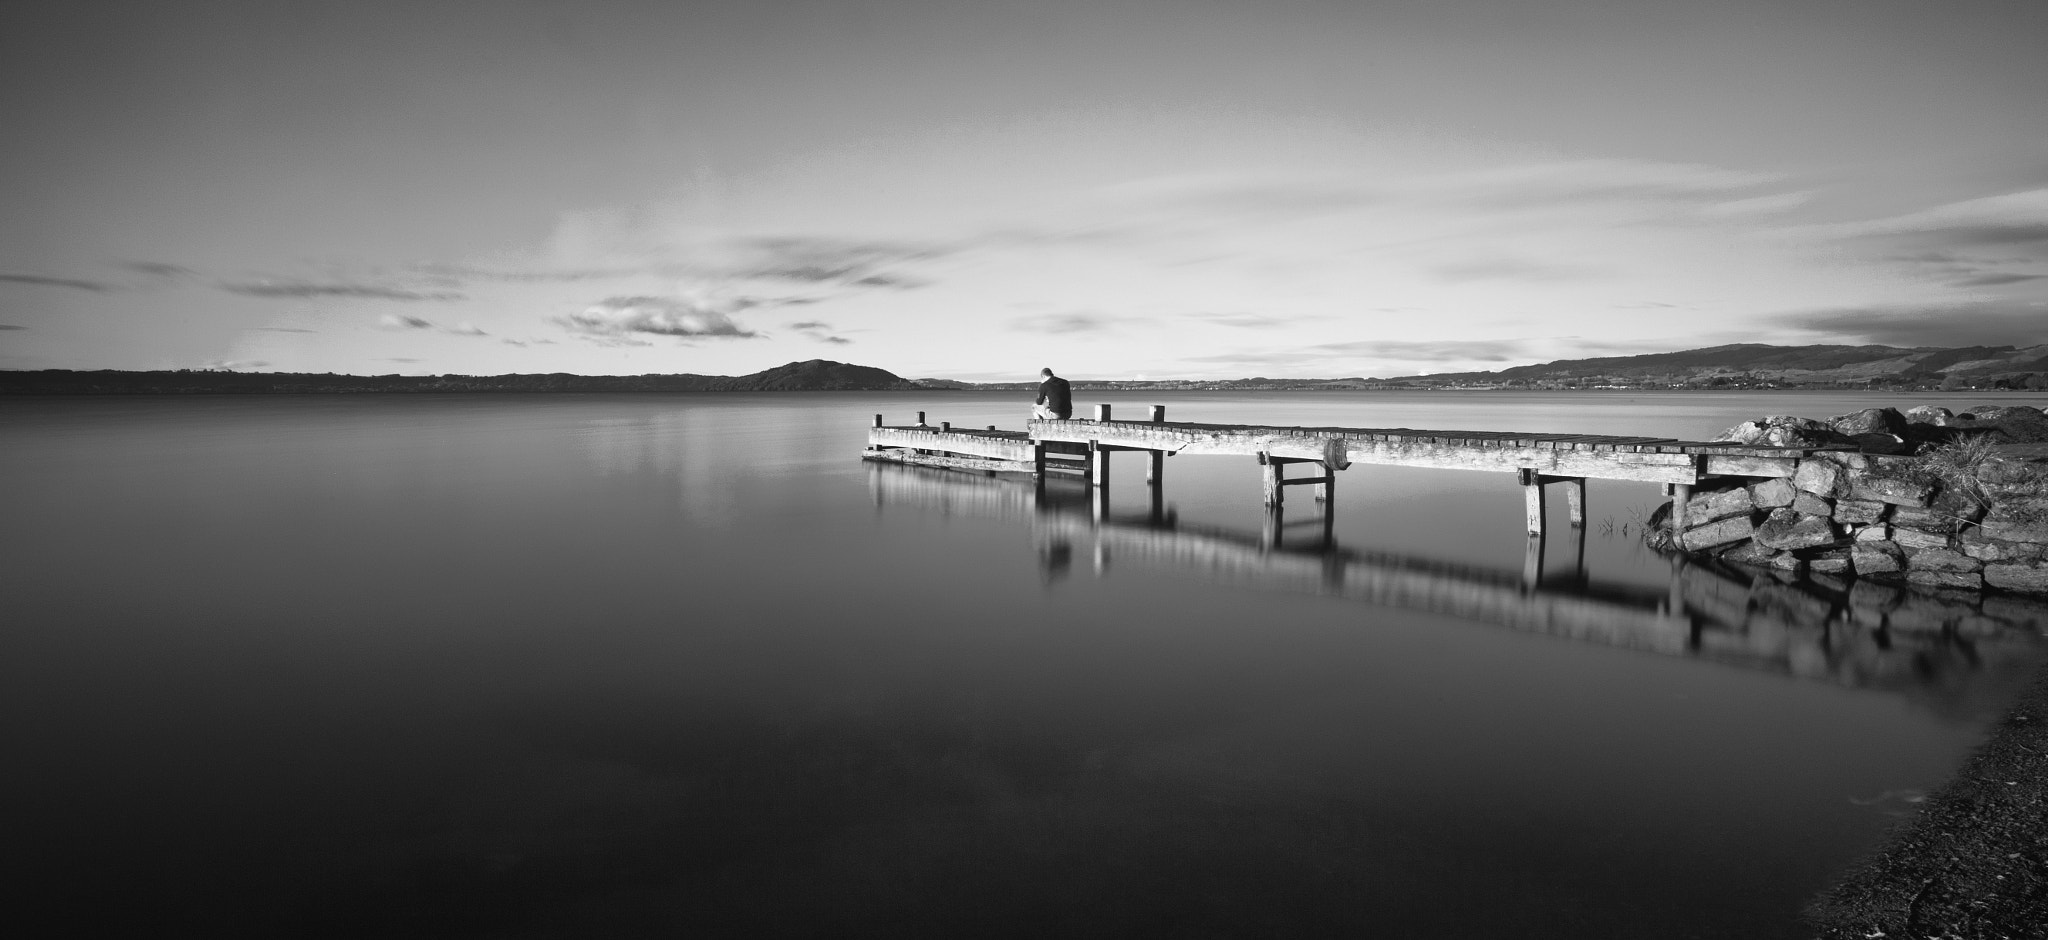 Photograph Quiet Contemplation by Steve Rowland on 500px